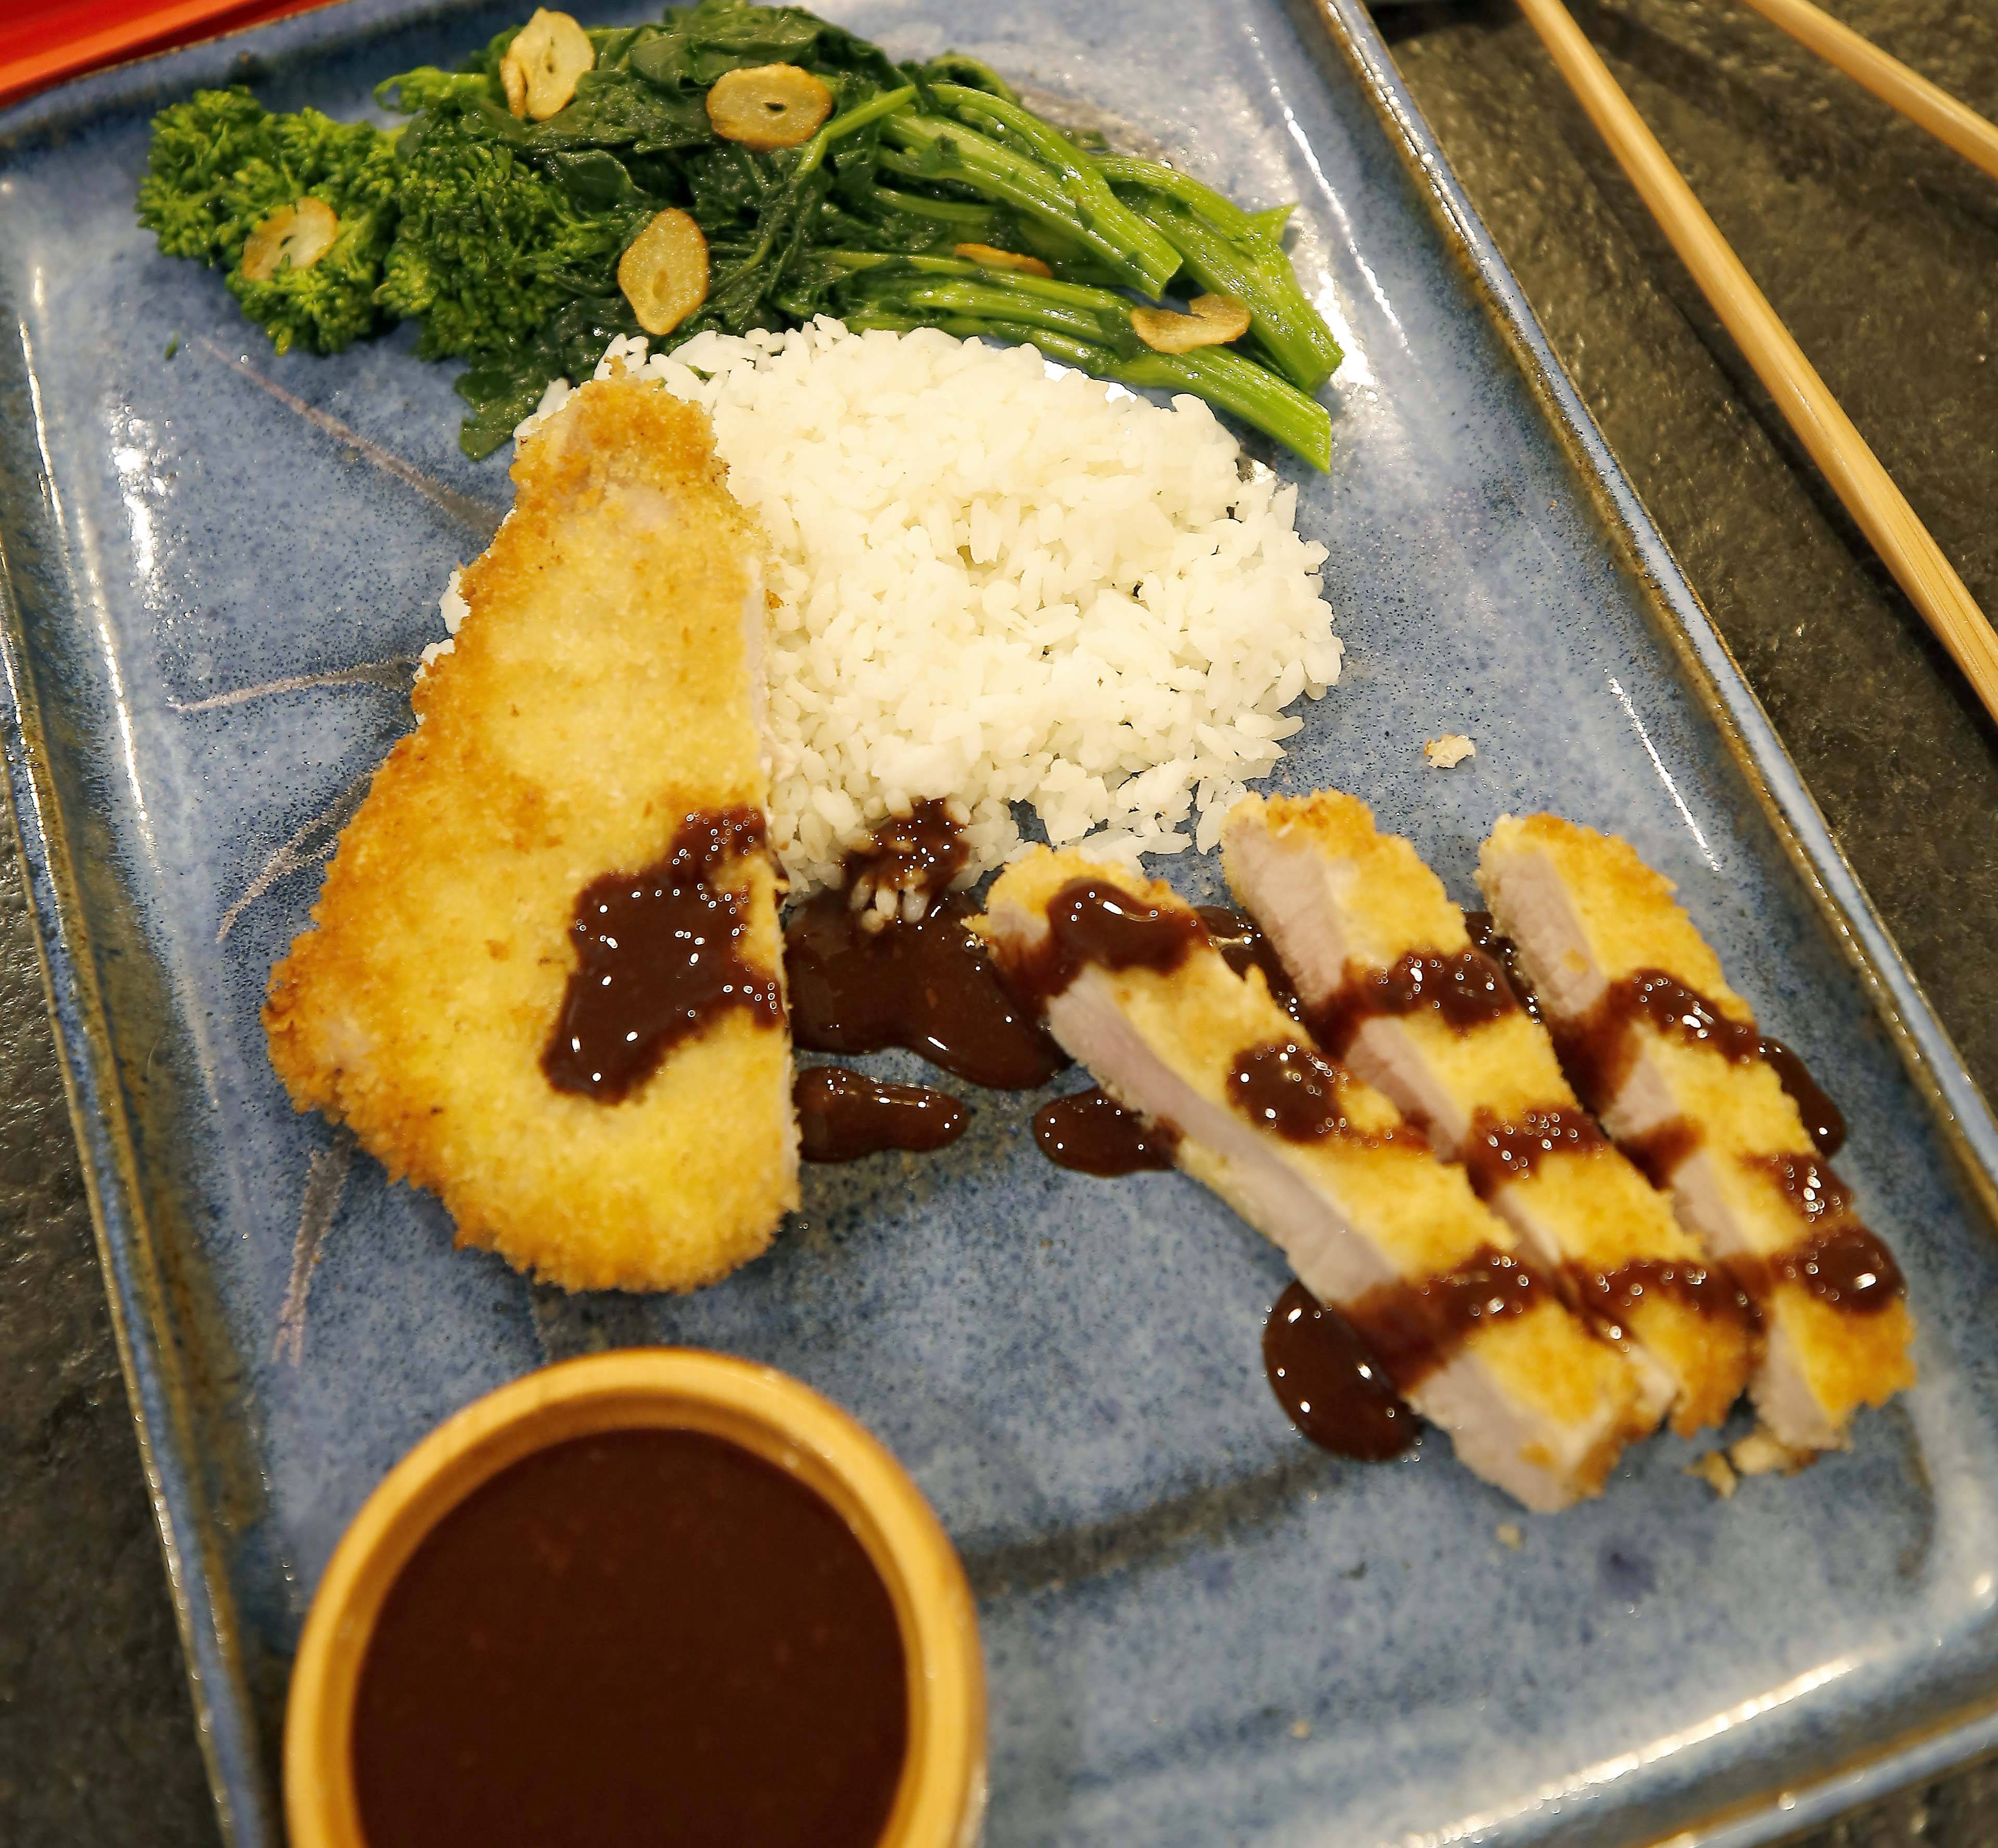 Mark Clemens' Breaded Pork Chops (Tonkatsu) with Japanese Barbecue Sauce and Broccoli Raab